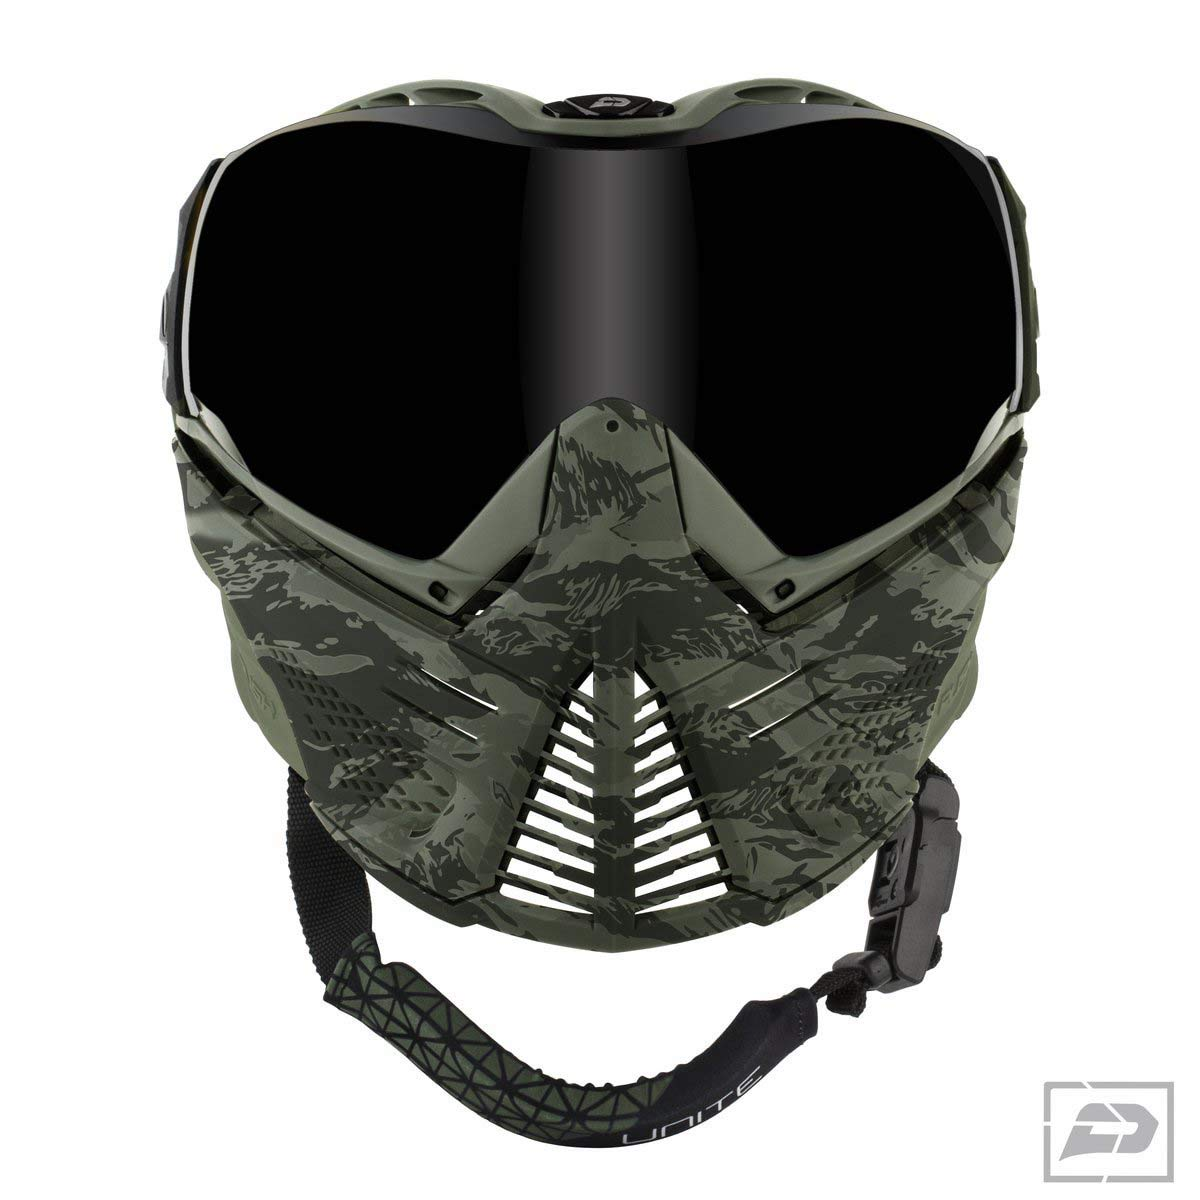 Push Unite Paintball Goggles & Case - Olive Camo by Push Paintball